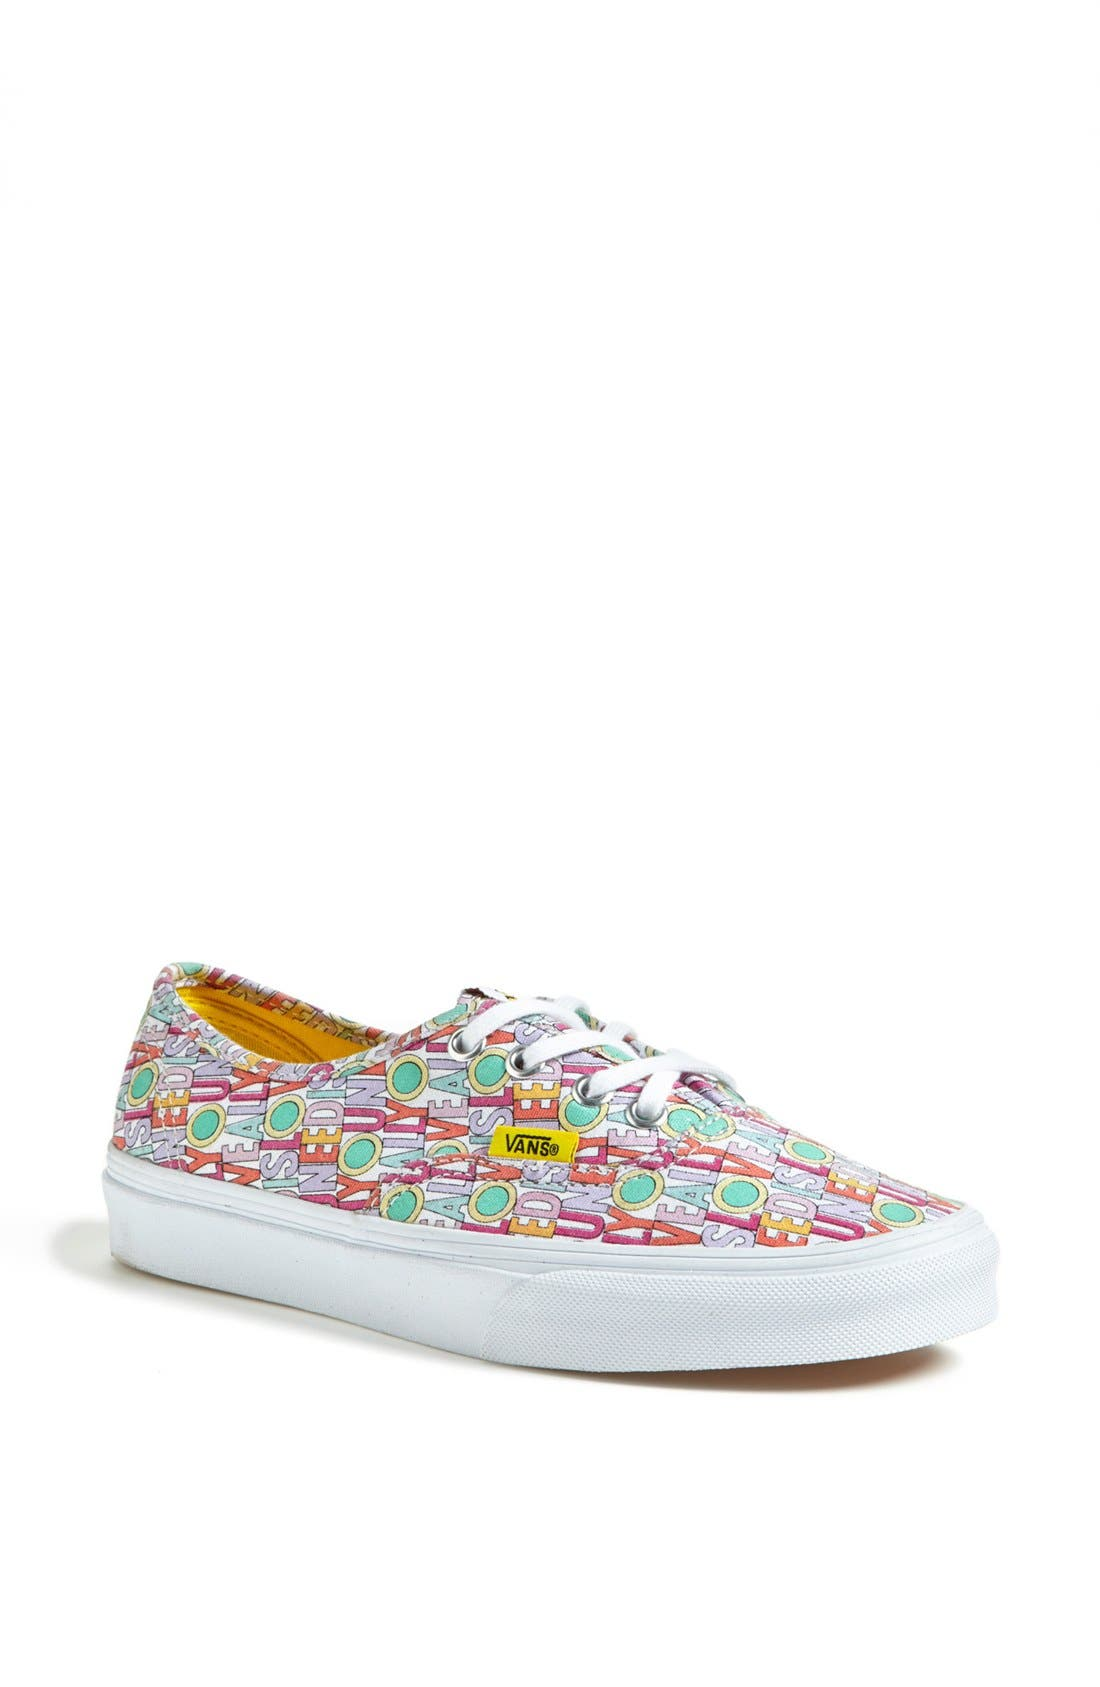 Alternate Image 1 Selected - Vans 'Authentic - All You Need Is Love' Sneaker